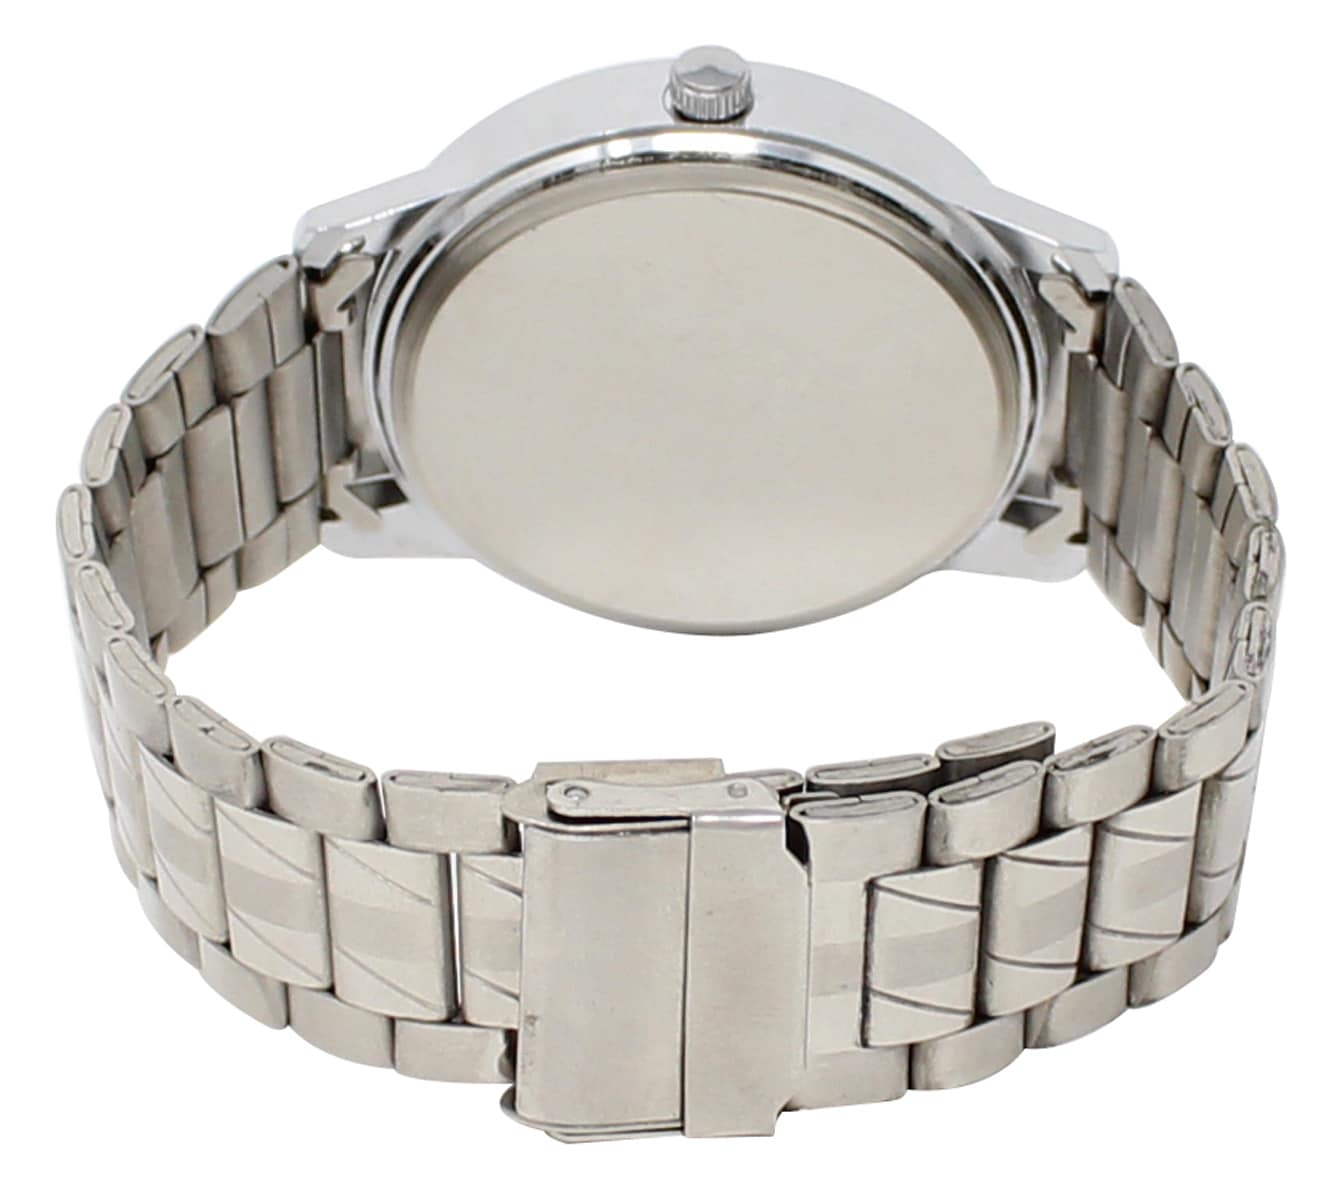 LOREM Watches For Mens Stylish Day And Date Indicator Silver Dial Stainless Steel Belt Official Look